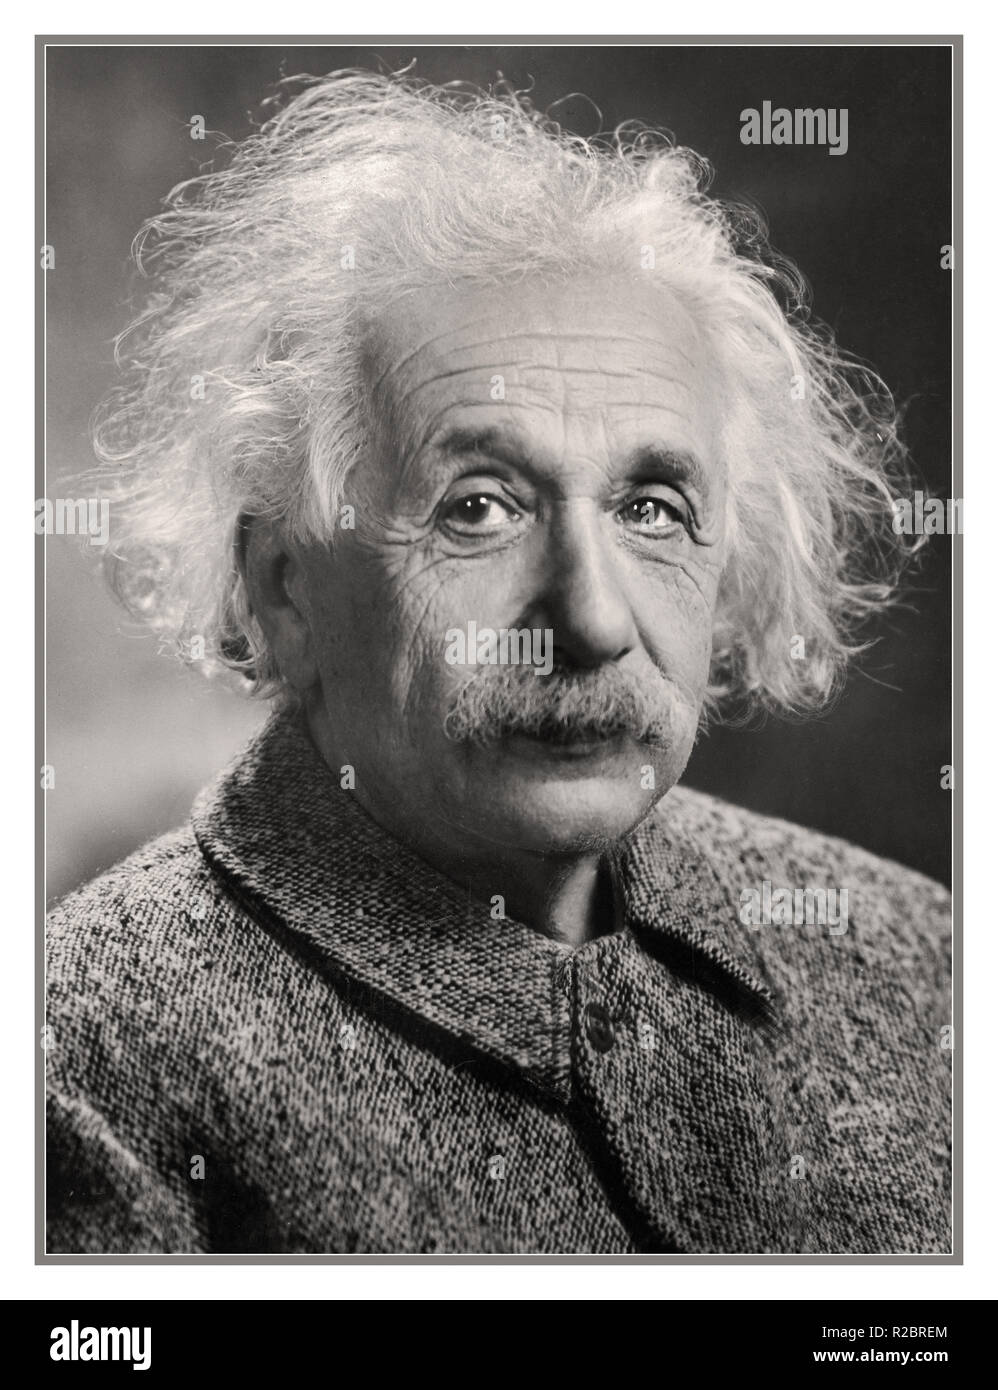 Albert Einstein theoretical physicist.  Albert Einstein was a German-born theoretical physicist who developed the theory of relativity, one of the two pillars of modern physics. His work is also known for its influence on the philosophy of science. Digitally enhanced image to produce original 1940's studio impact and quality. - Stock Image